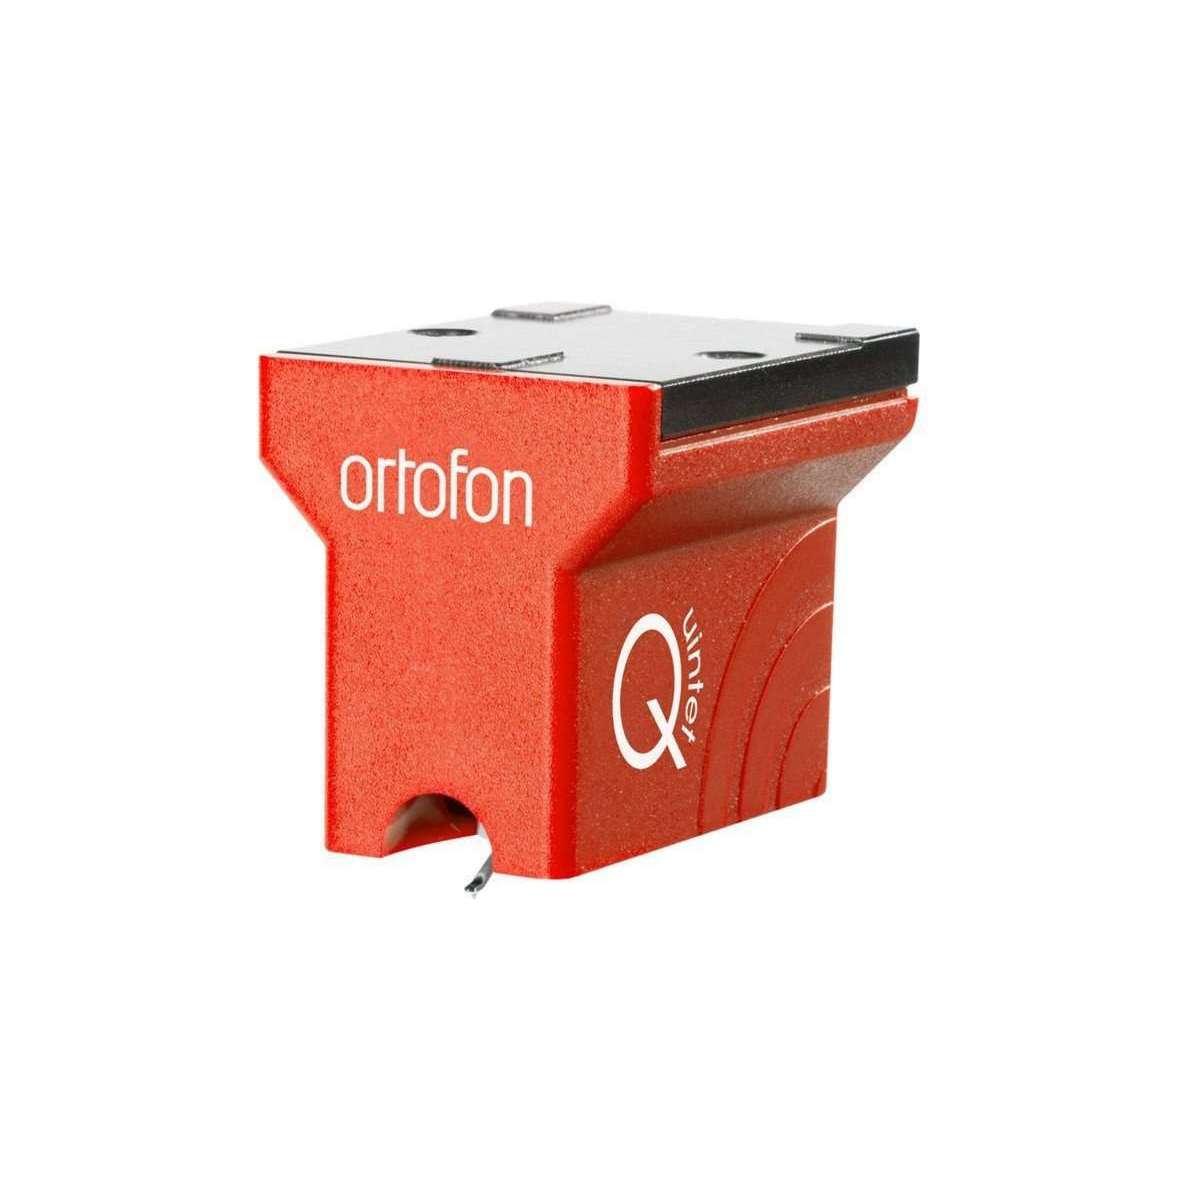 Ortofon Quintet Red Moving Coil Cartridge - Default Title - Call SpatialOnline 0345 557 7334